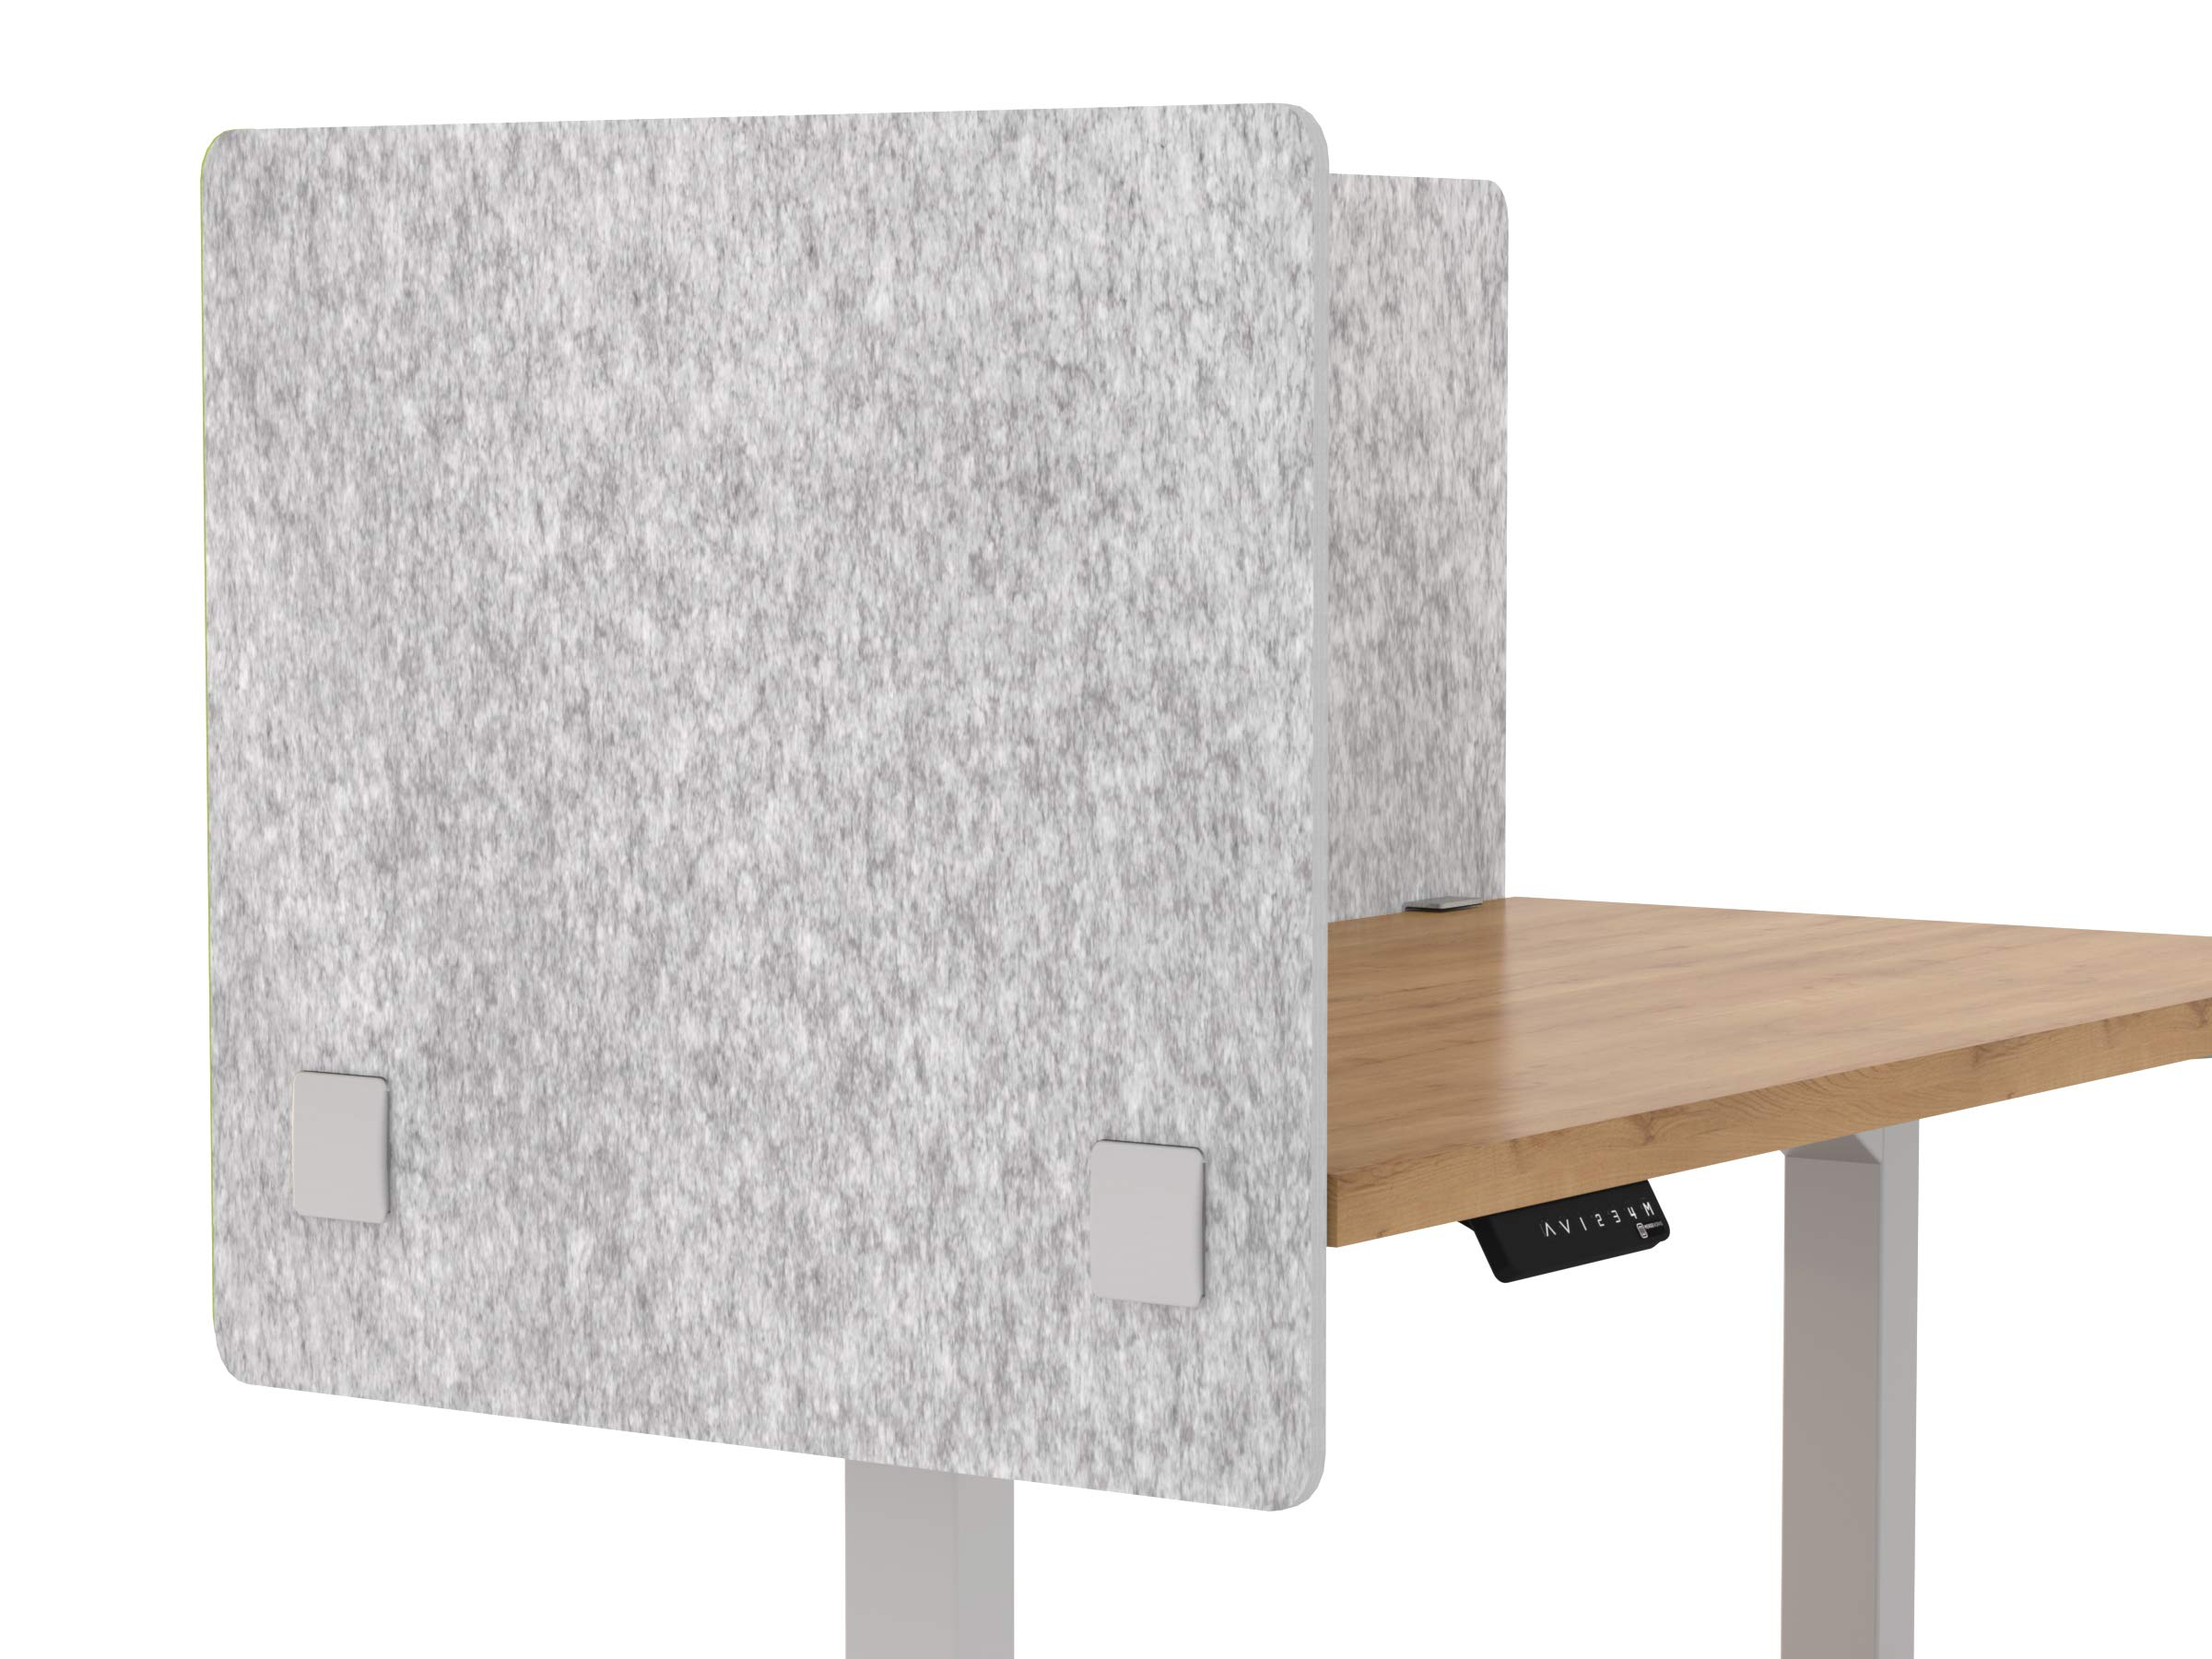 "VaRoom Acoustic Partition, Sound Absorbing Desk Divider – 30"" W x 24""H Privacy Desk Mounted Cubicle Panel, Iced Grey"